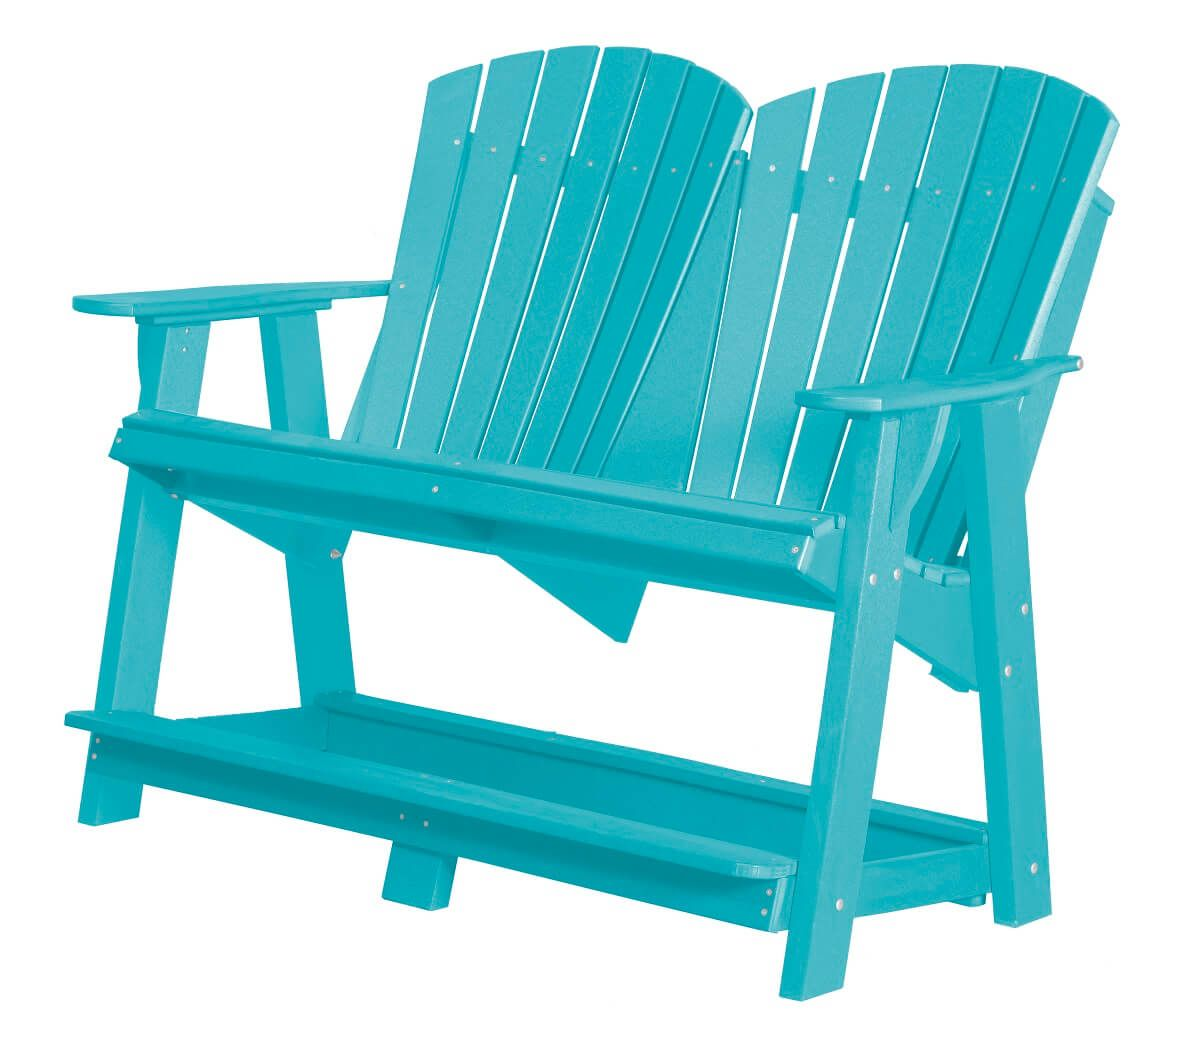 Aruba Blue Sidra Double High Adirondack